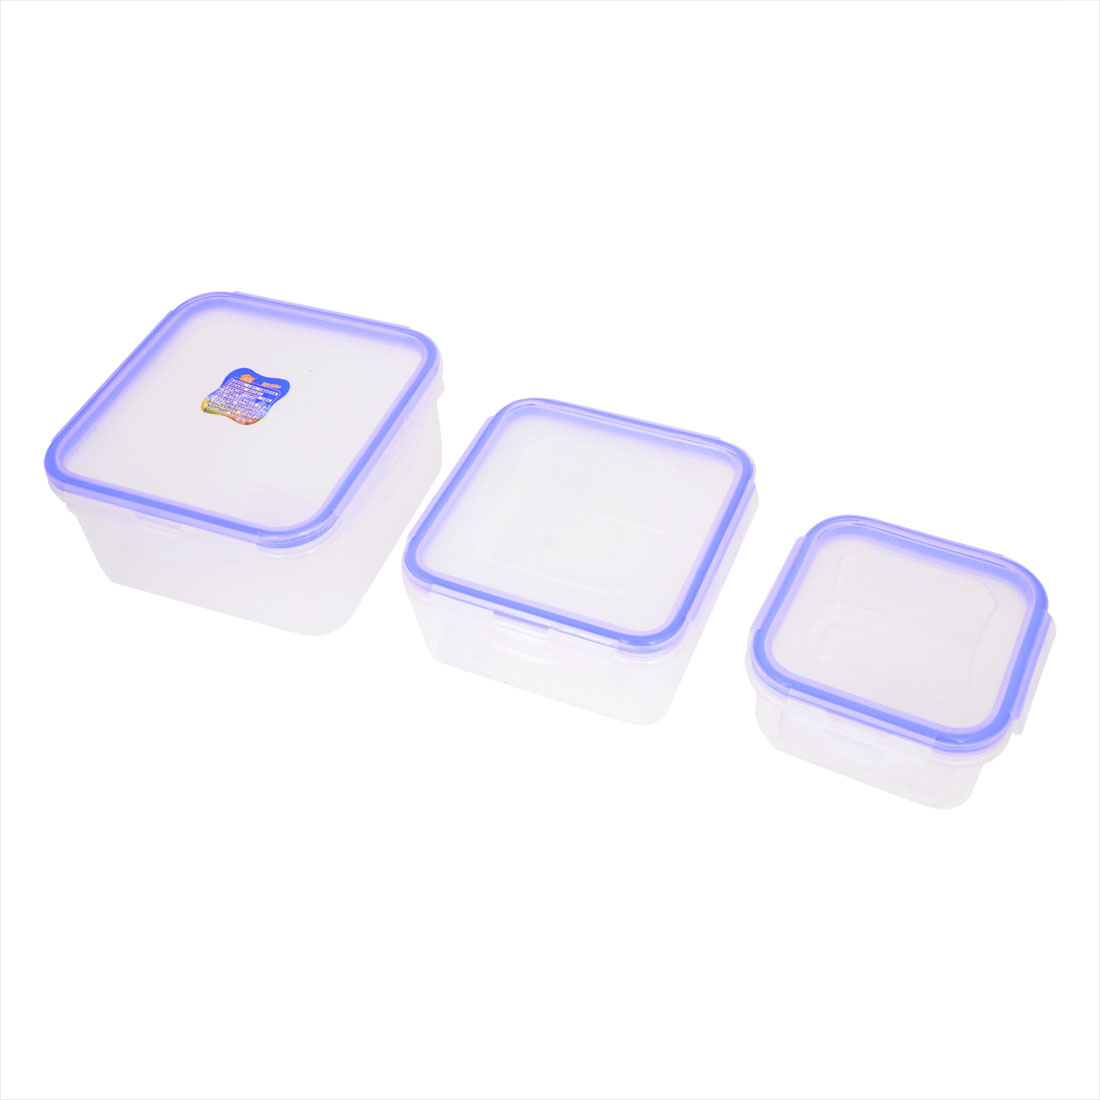 Square Shaped Blue Clear Plastic Airtight Food Storage Box 3pcs